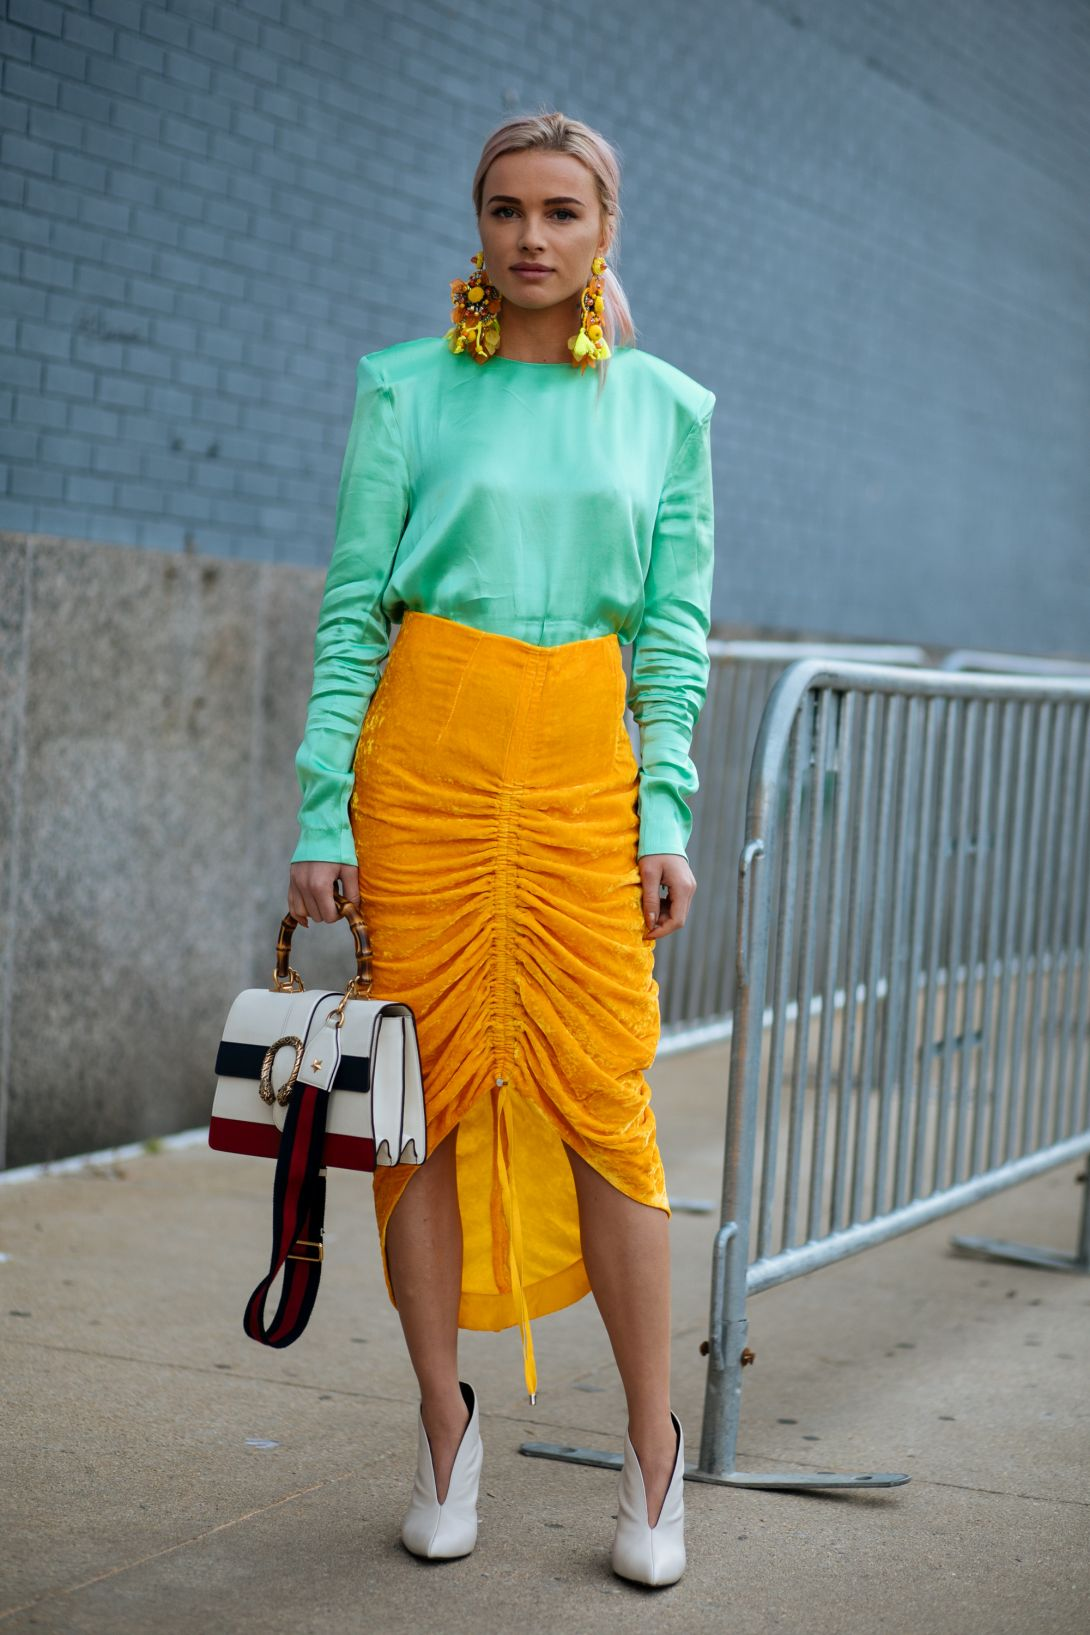 New York Fashion Week Spring 2018 - Street Style